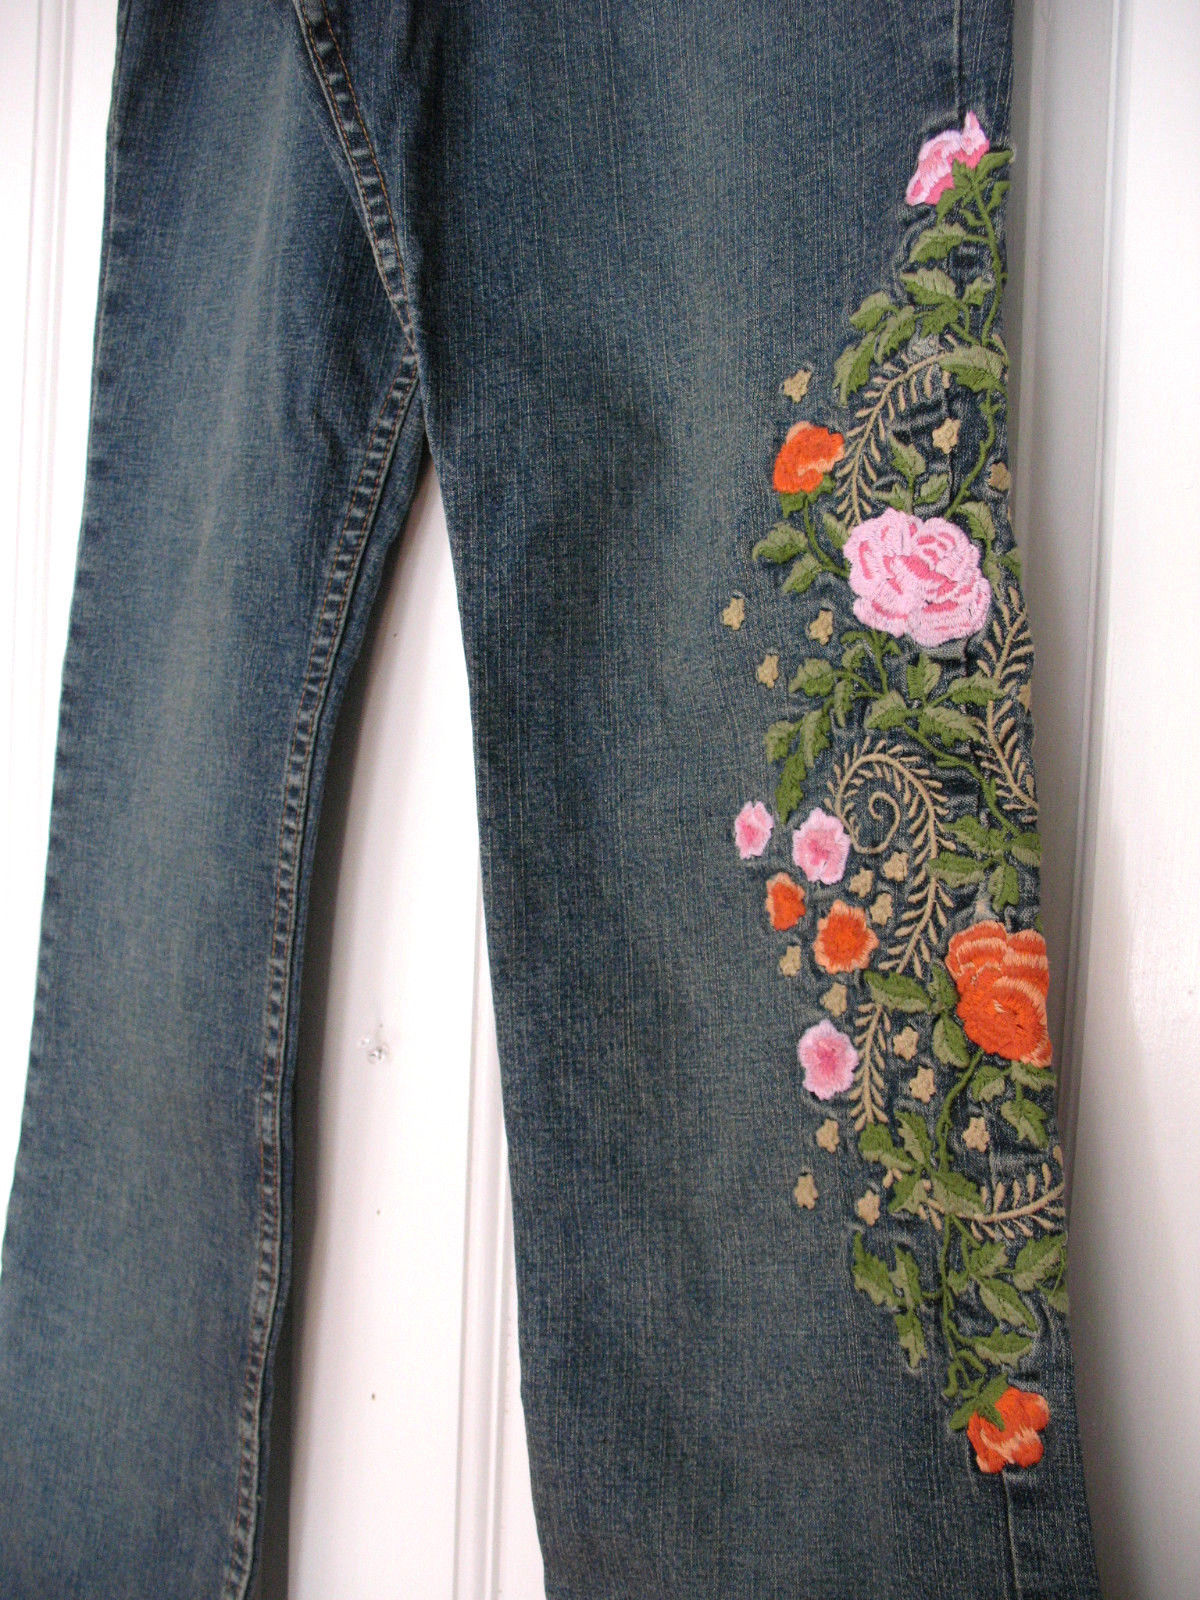 NEW Moon Song Maternity Floral Embroidered Stretch Denim Flare Bootcut Jeans XS